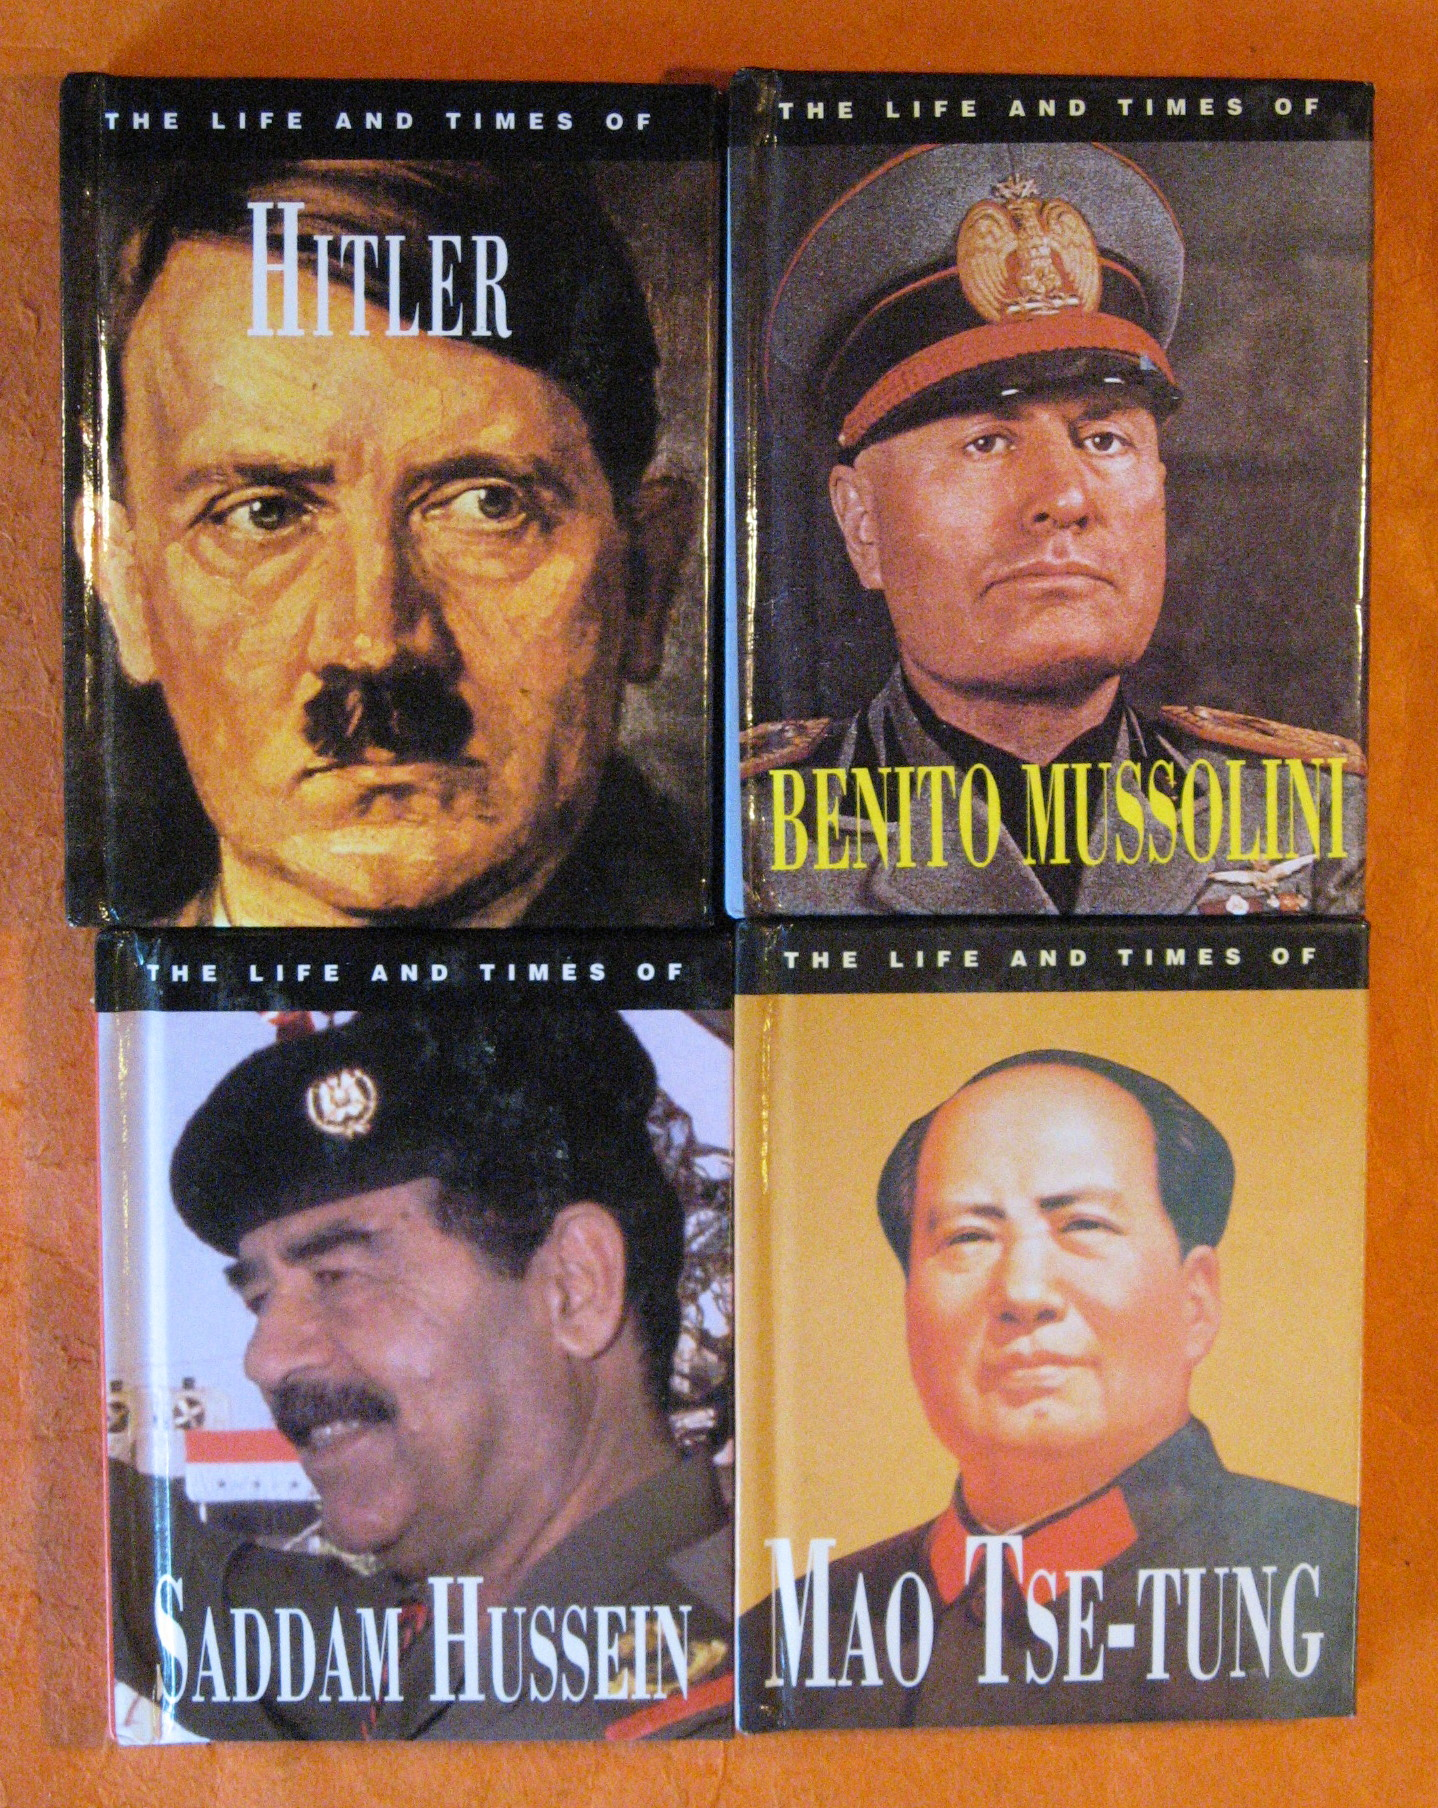 Four Tiny Books on Dictators - Mao Tse-Tung, Benito Mussolini, Hitler, and Saddam Hussein